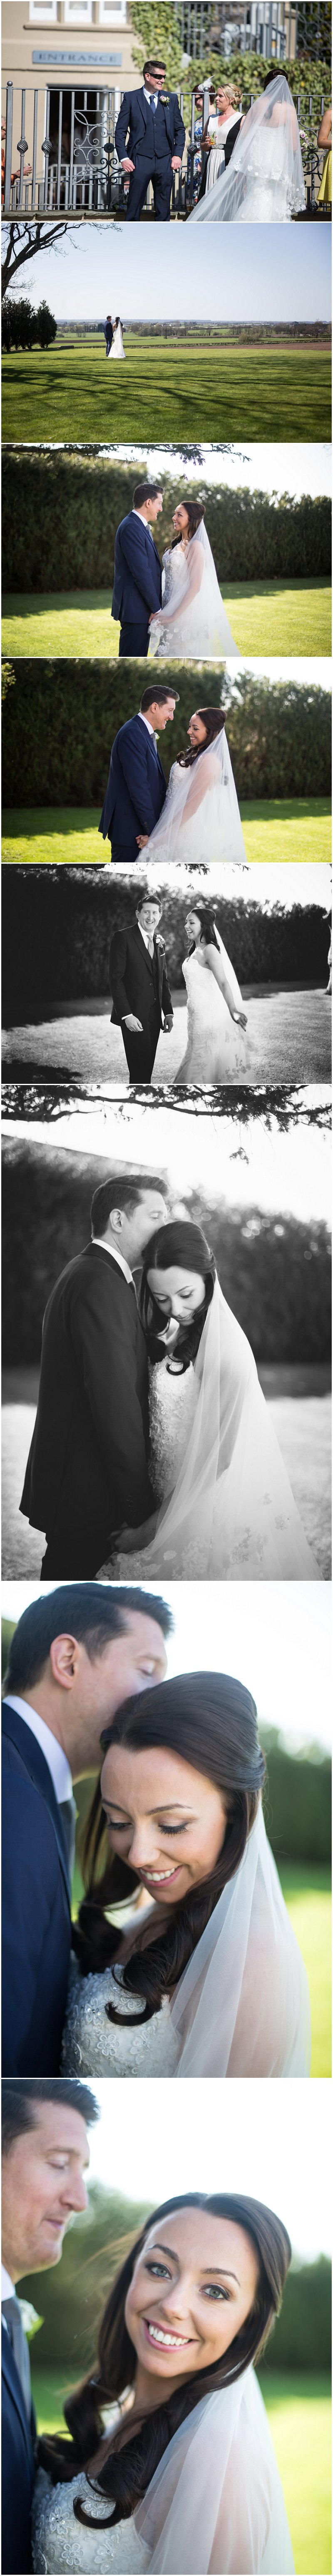 Bride and groom portraits at West Tower wedding venue Liverpool